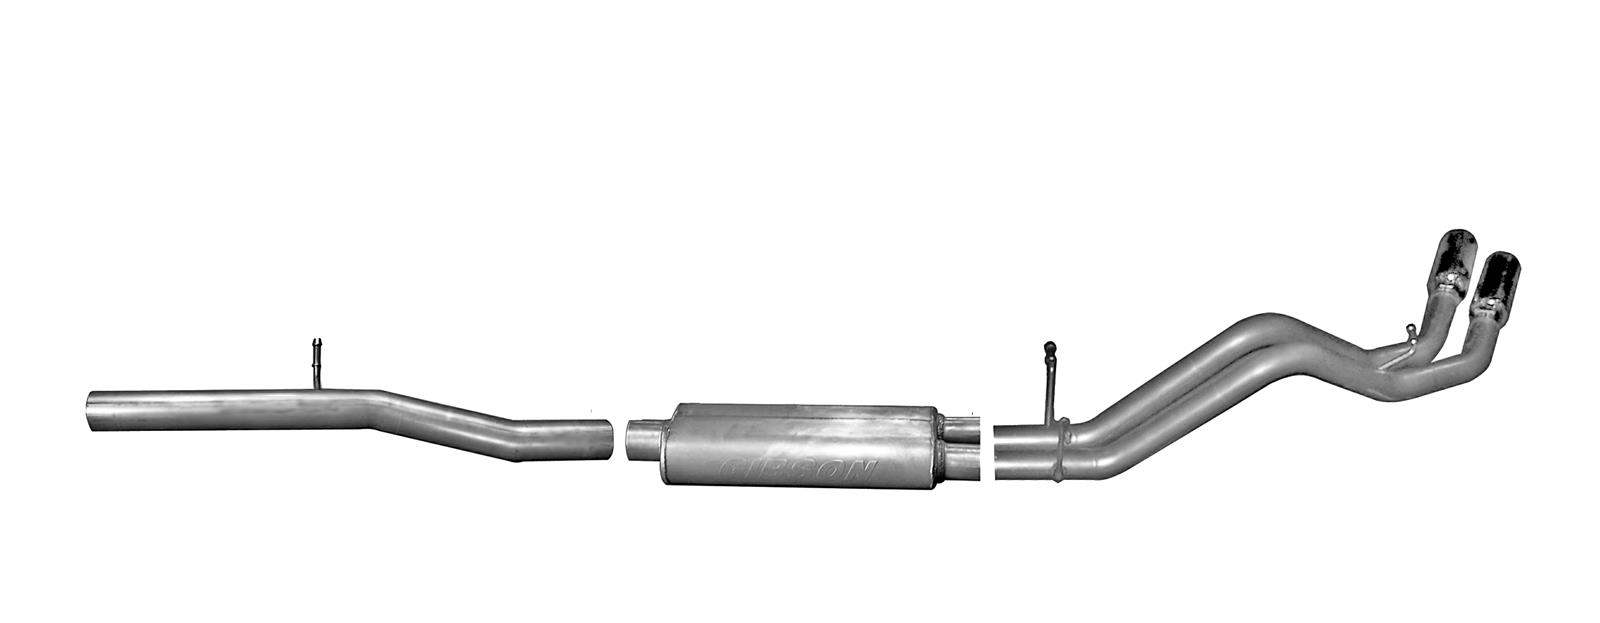 Gibson Dual Sport Truck Exhaust Systems 65656